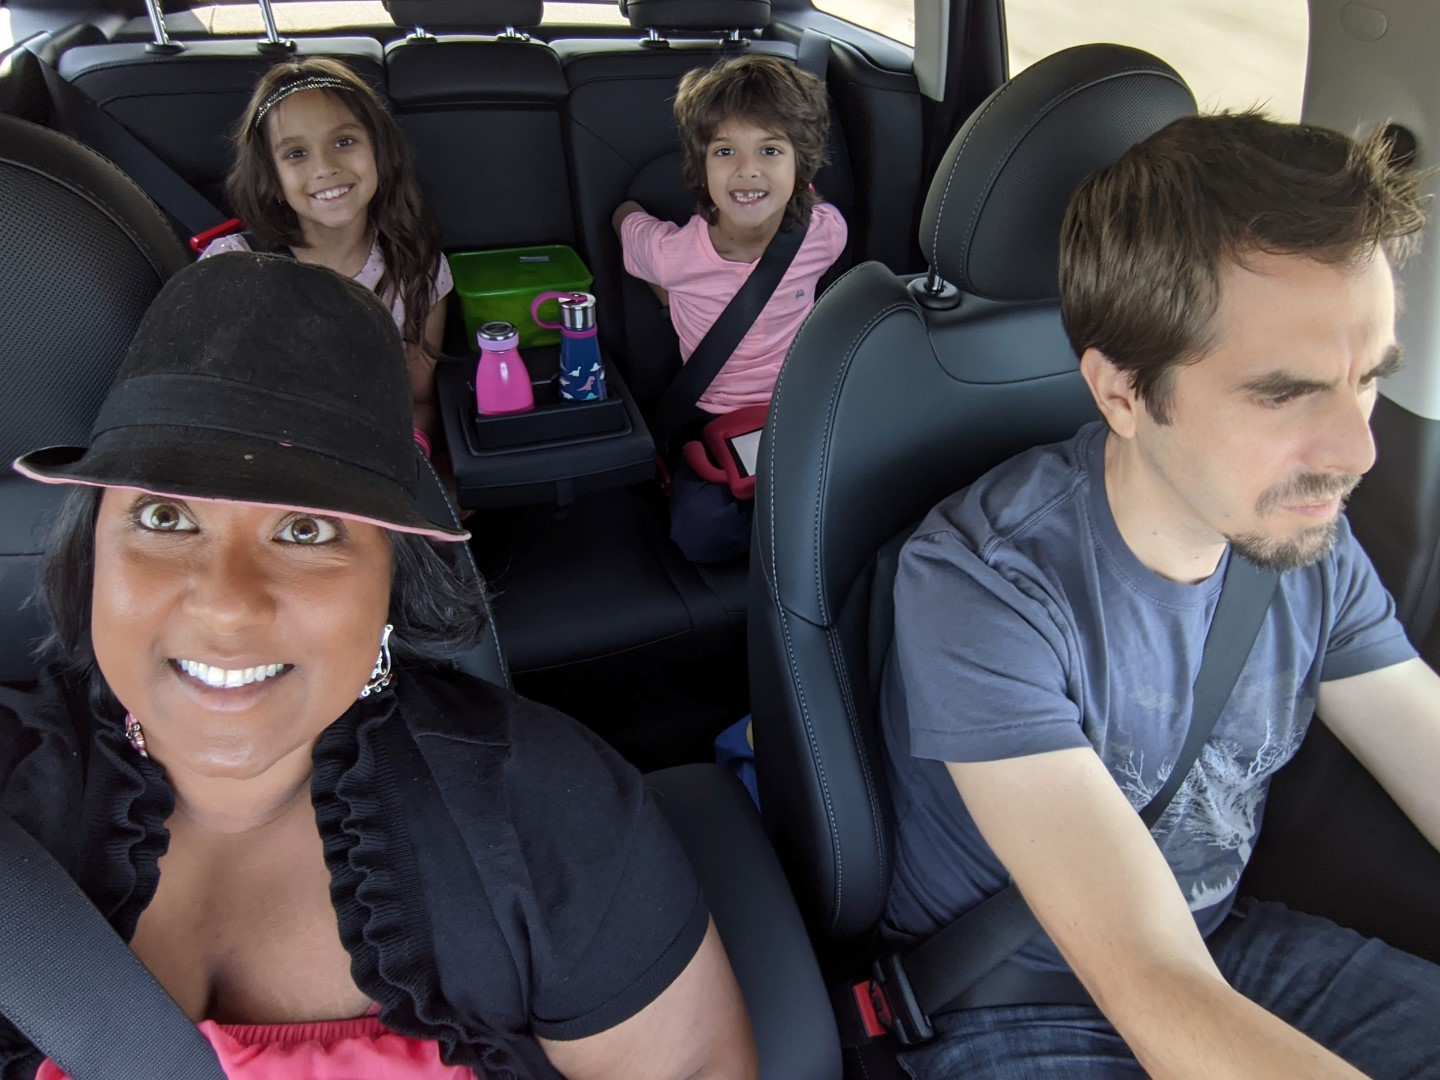 mom, dad and two kids in car for road trip